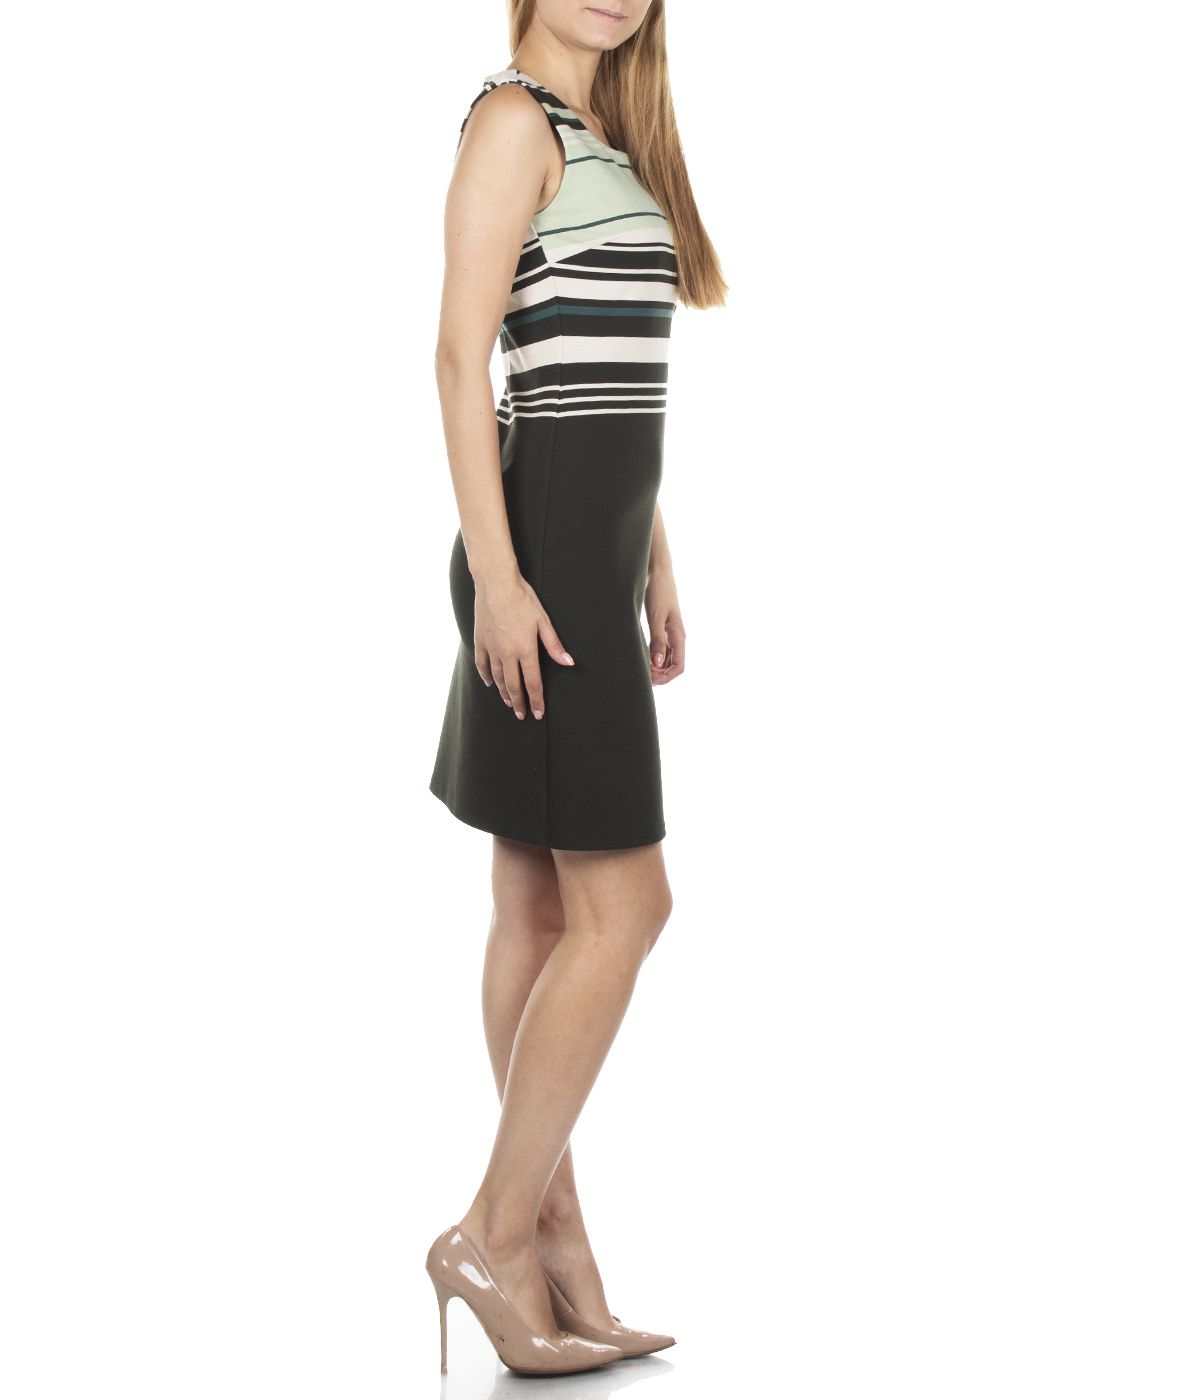 PENCIL SLEEVELESS DRESS WITH STRIPES AND ROUND NECKLINE 3